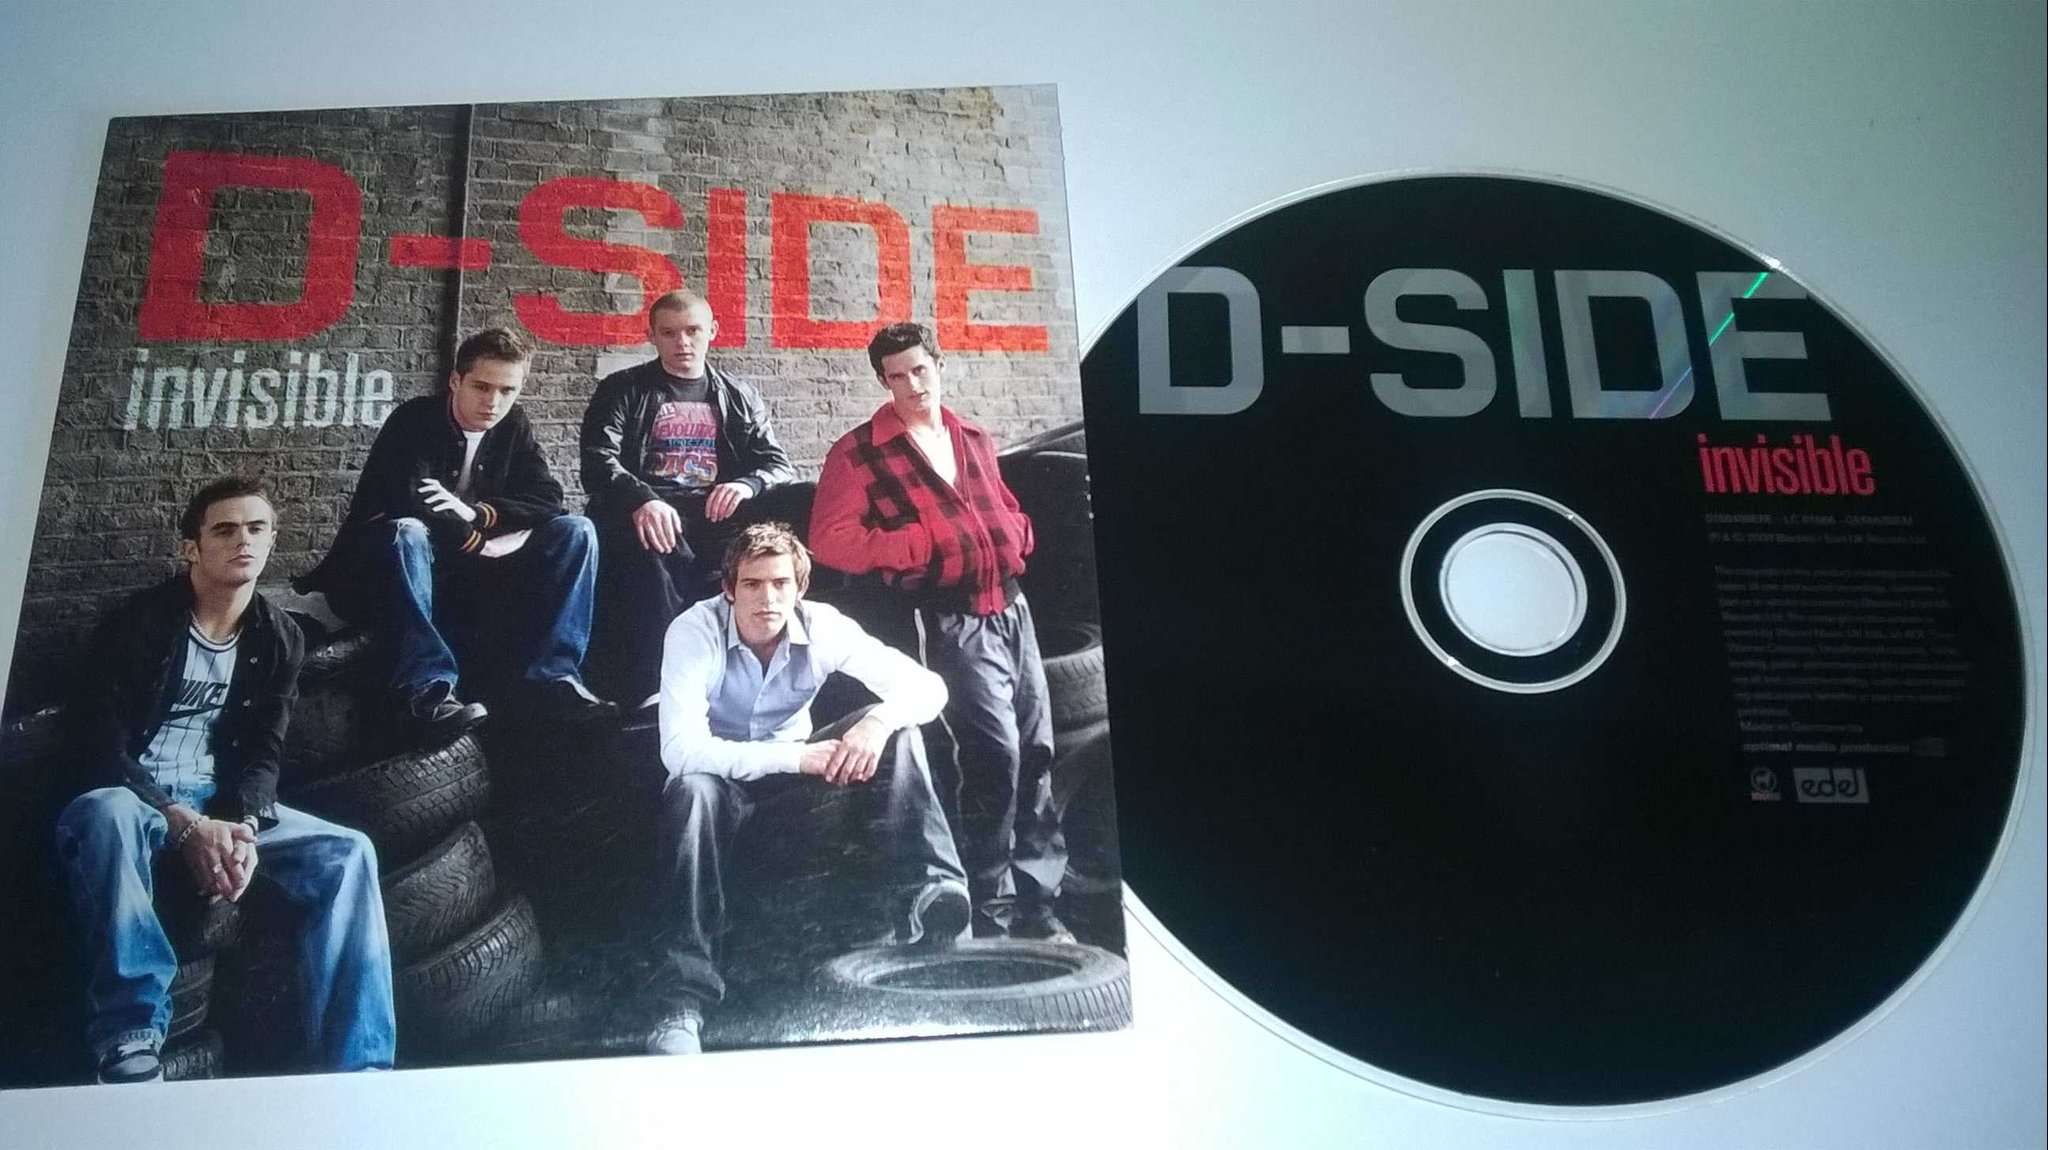 D-side - Invisible, single CD